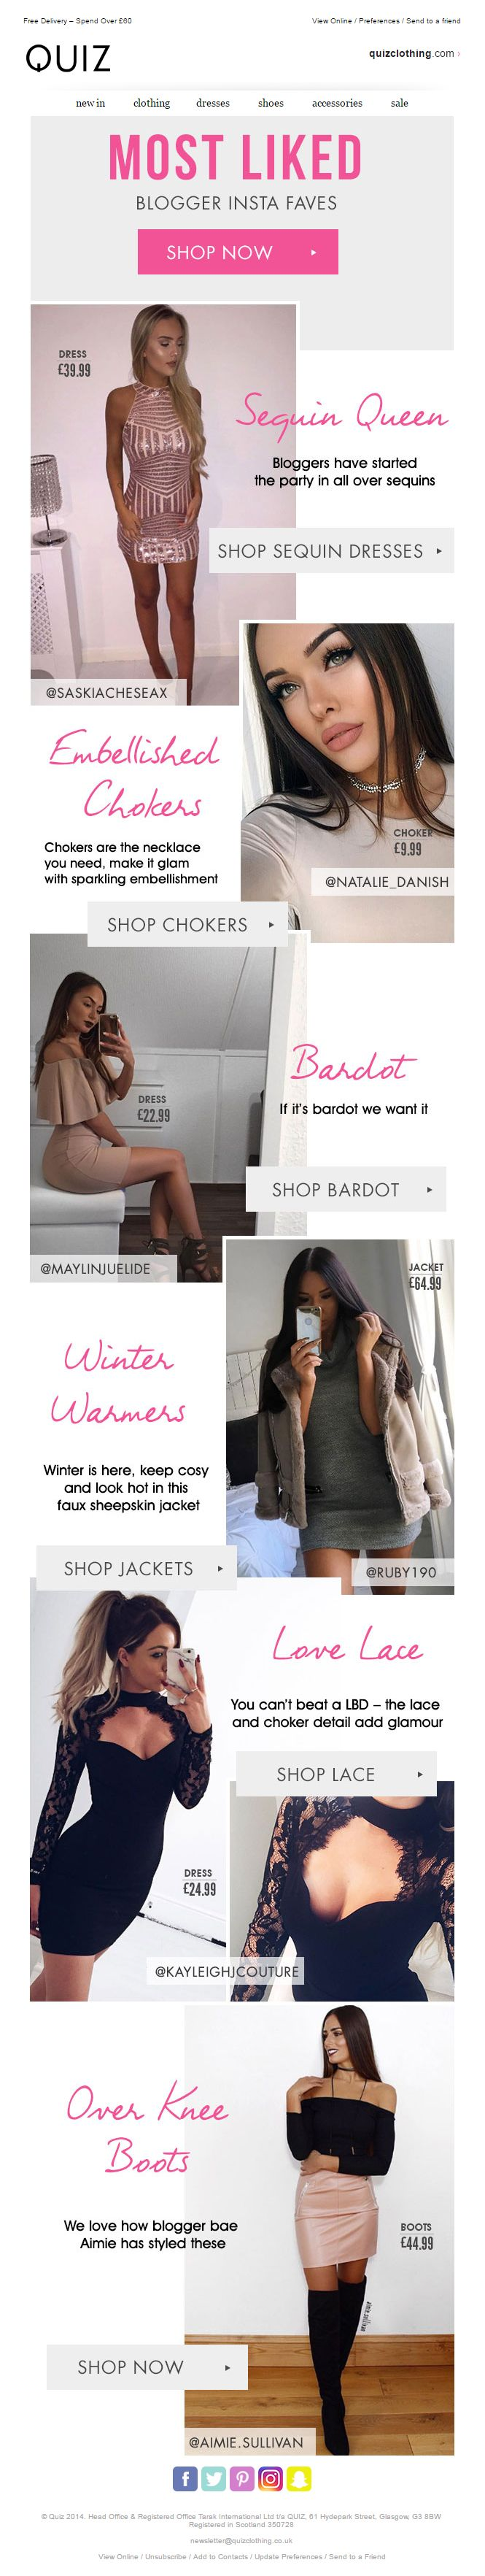 Social Media Email from Quiz Clothing #EmailMarketing #Email #Marketing #Social #Media #SocialMedia #Fashion #Clothing #Instagram